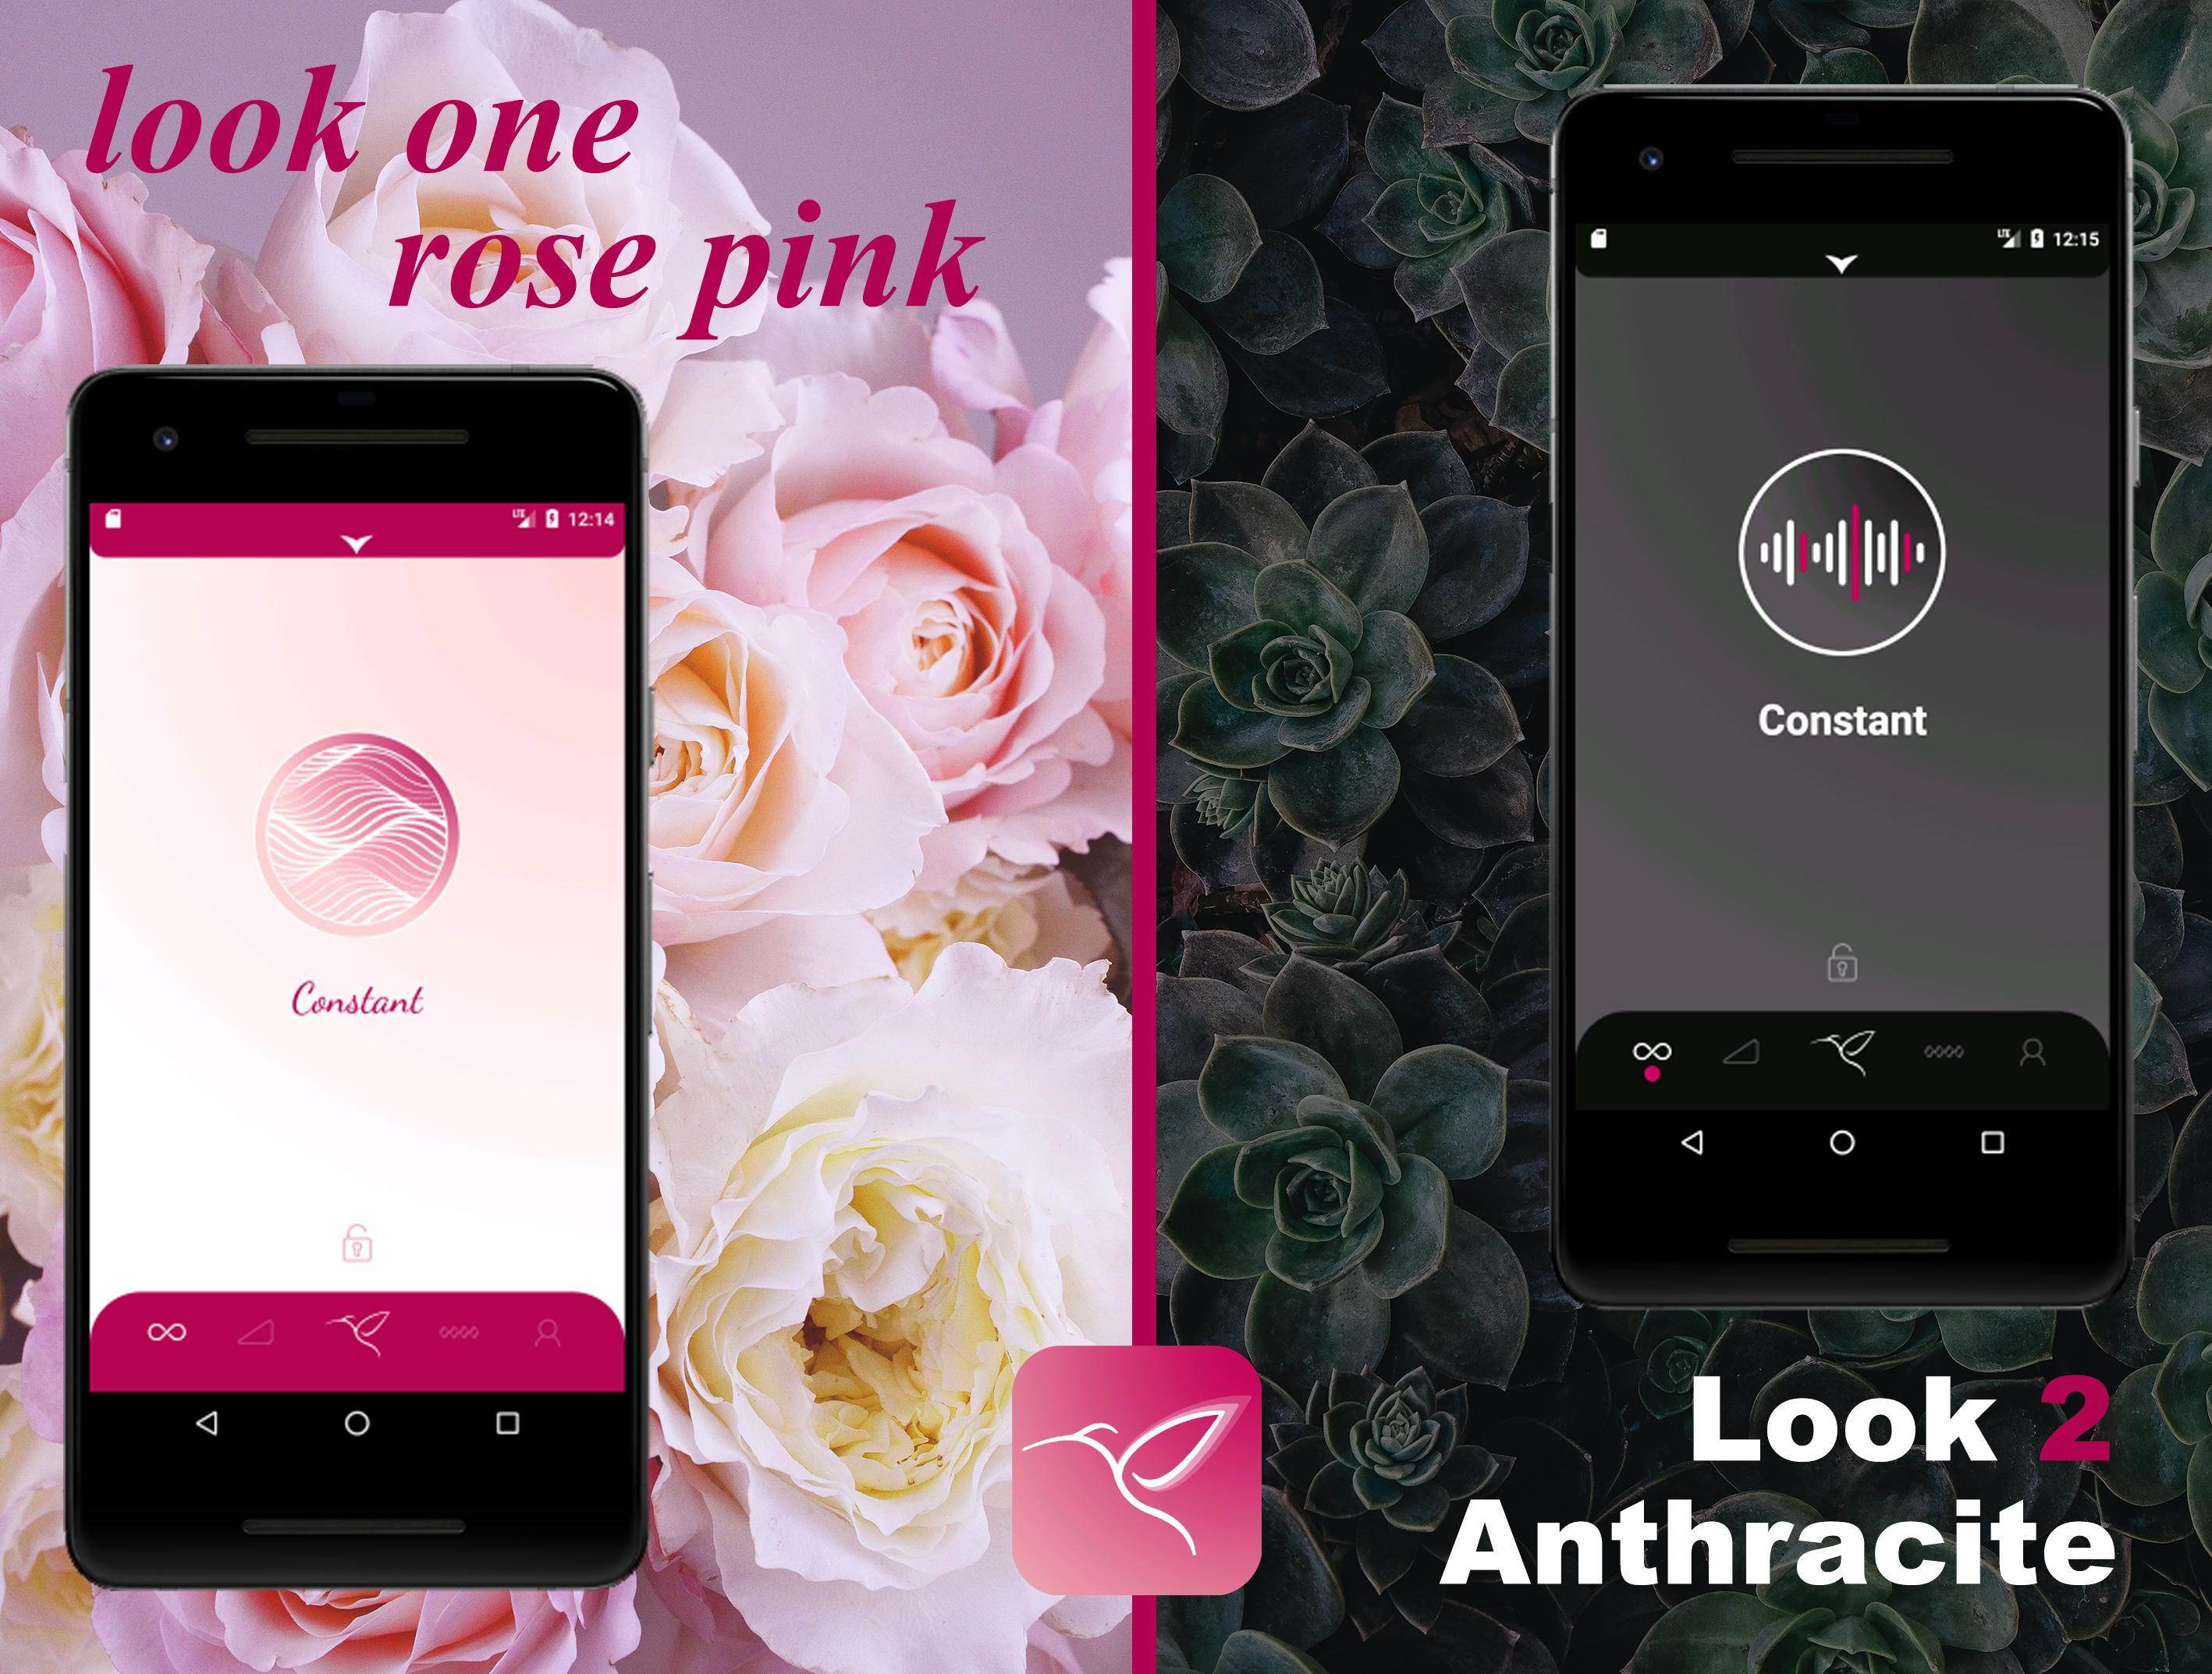 Hummingbird Tingle Vibrator Massage Vibrate Your For Android Apk Download